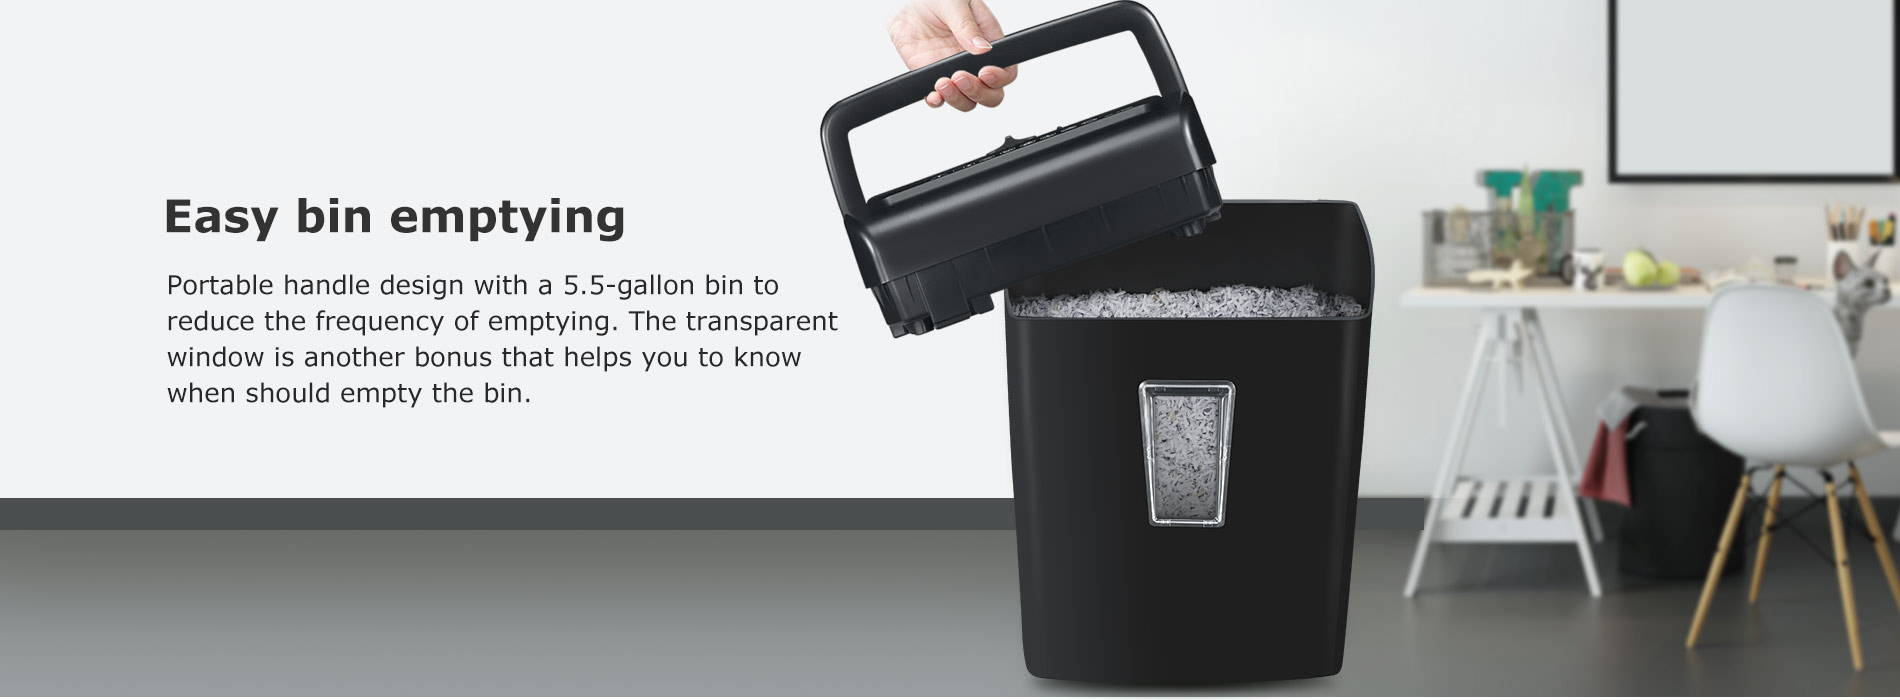 Easy bin emptying Portable handle design with a 5.5-gallon bin to reduce the frequency of emptying. The transparent window is another bonus that helps you to know when should empty the bin.